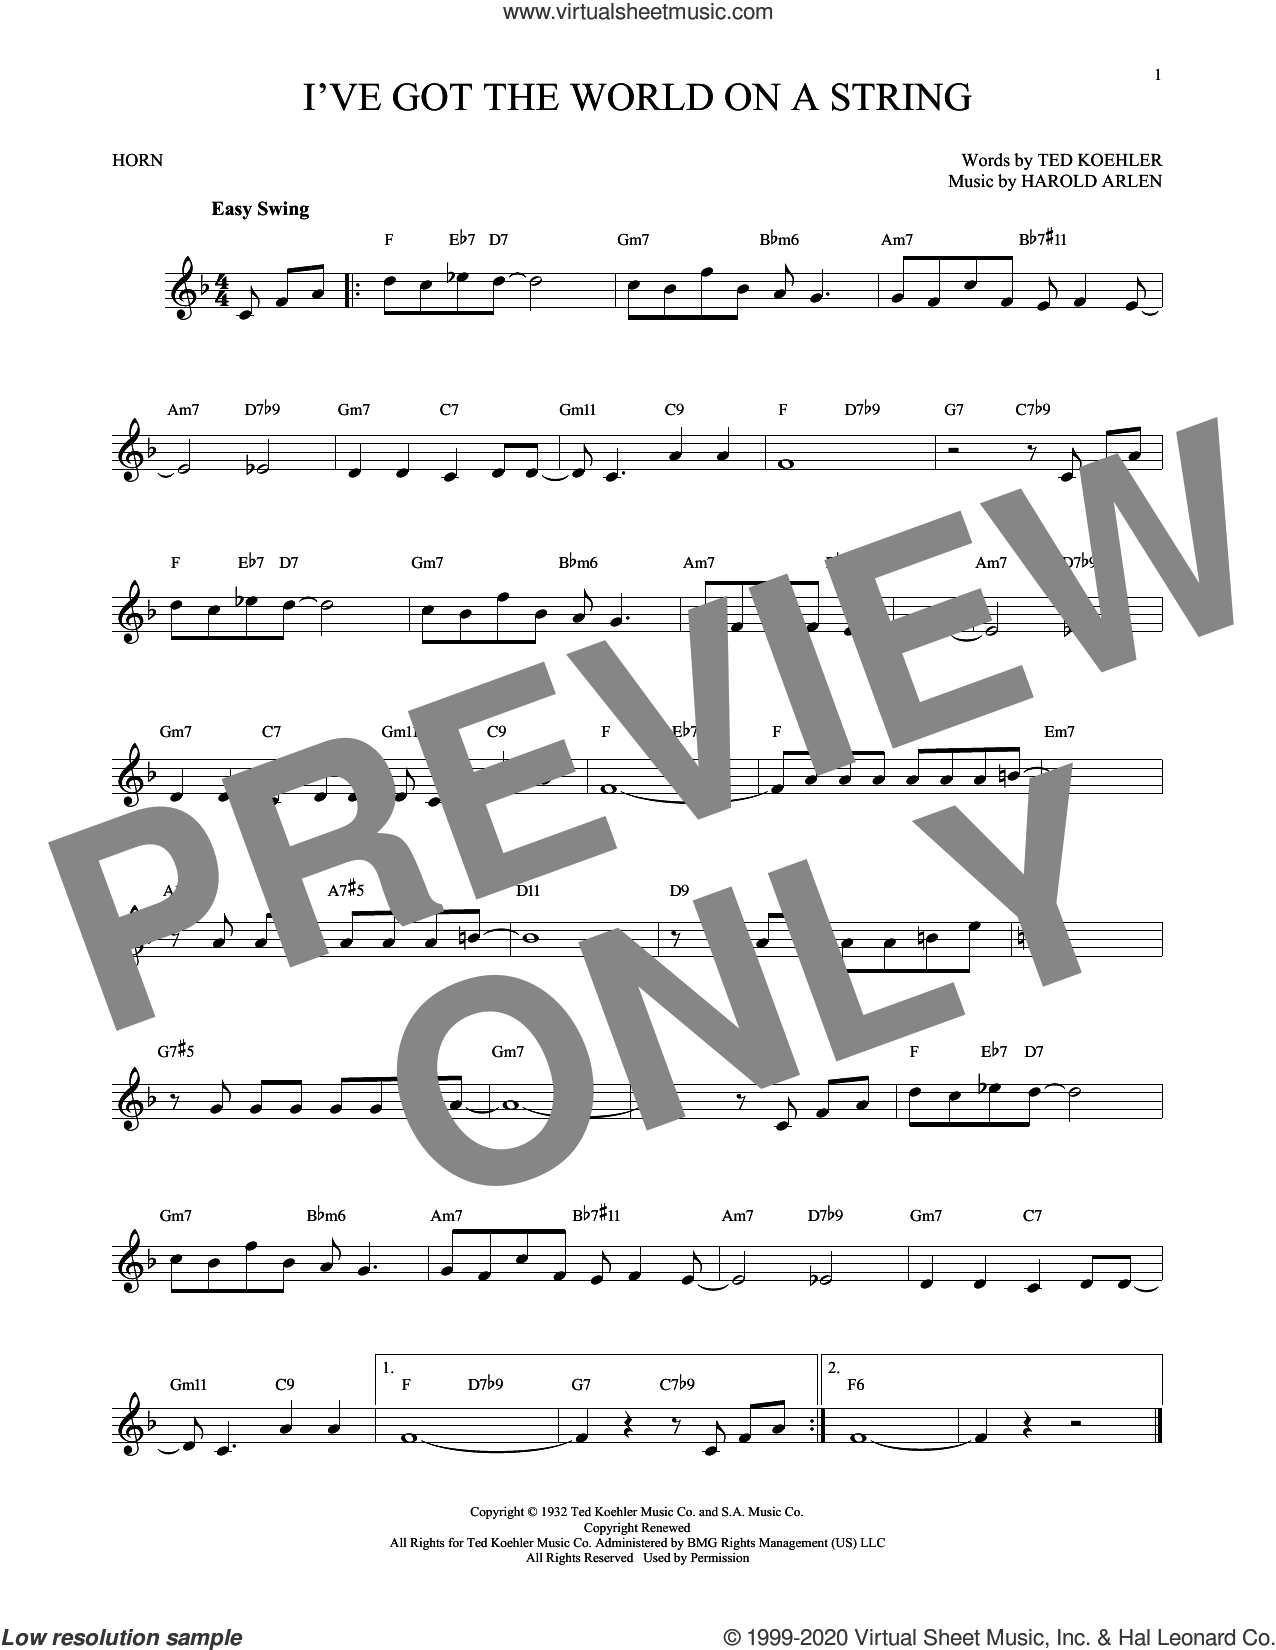 I've Got The World On A String sheet music for horn solo by Harold Arlen, Dick Hyman and Ted Koehler, intermediate skill level